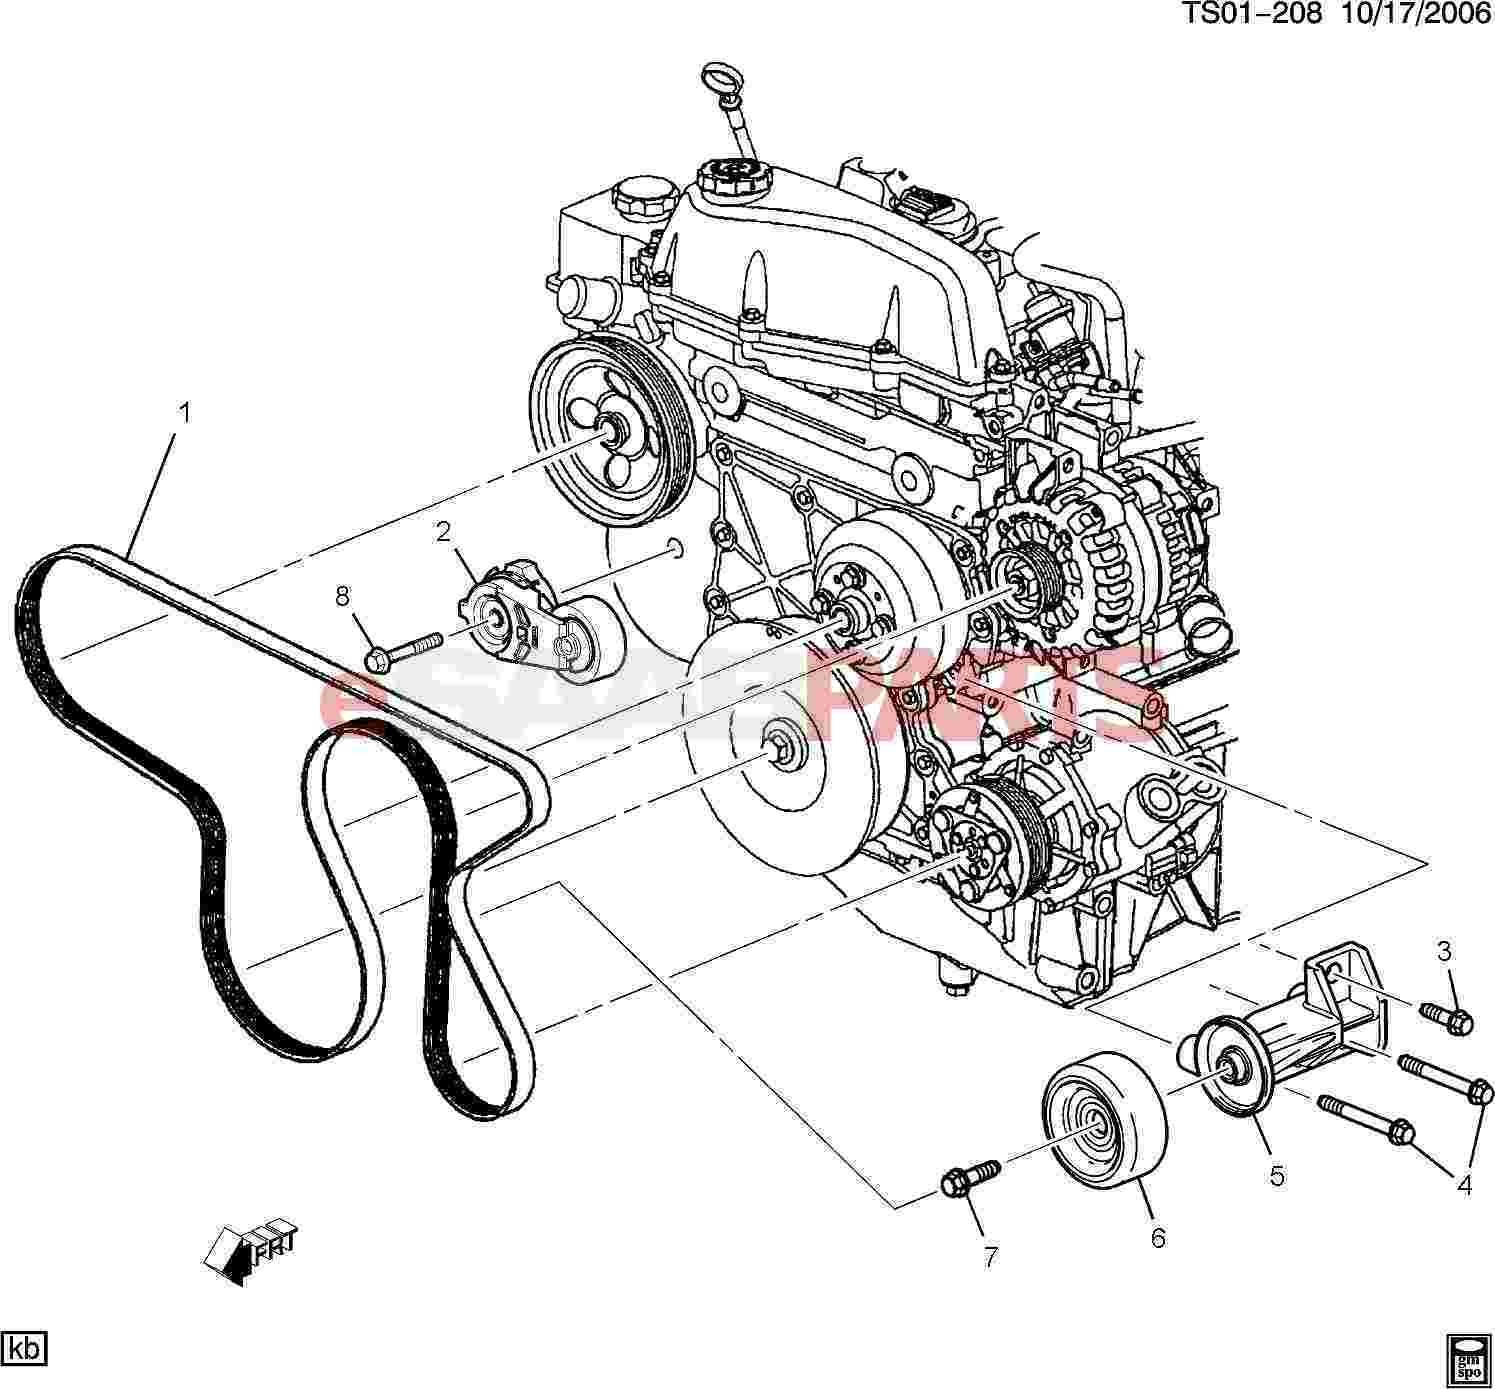 Bonneville Radio Wiring Diagram On Wiper Motor Replacement On 2003